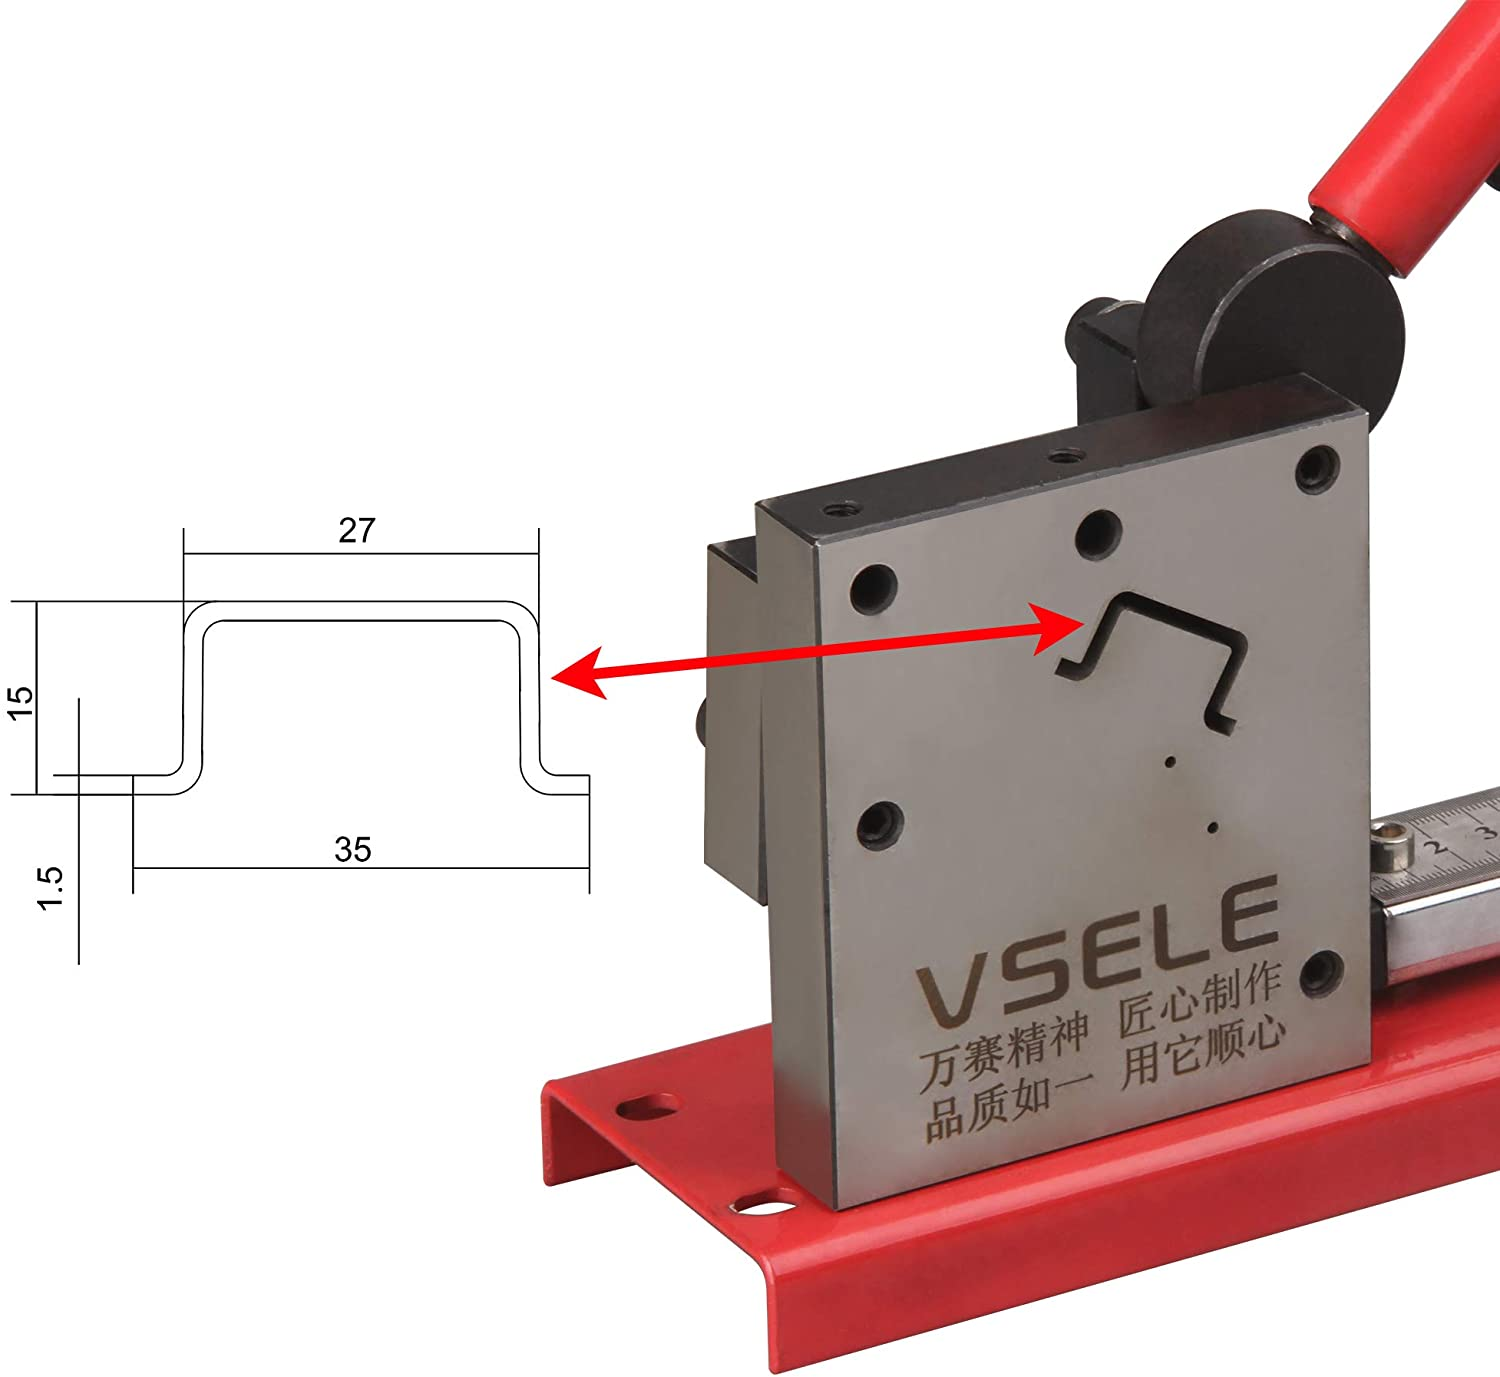 DIN Rail Cutter Tool for Cutting with Guide and measuring ruler, cutting 35x15x1.5mm din rail